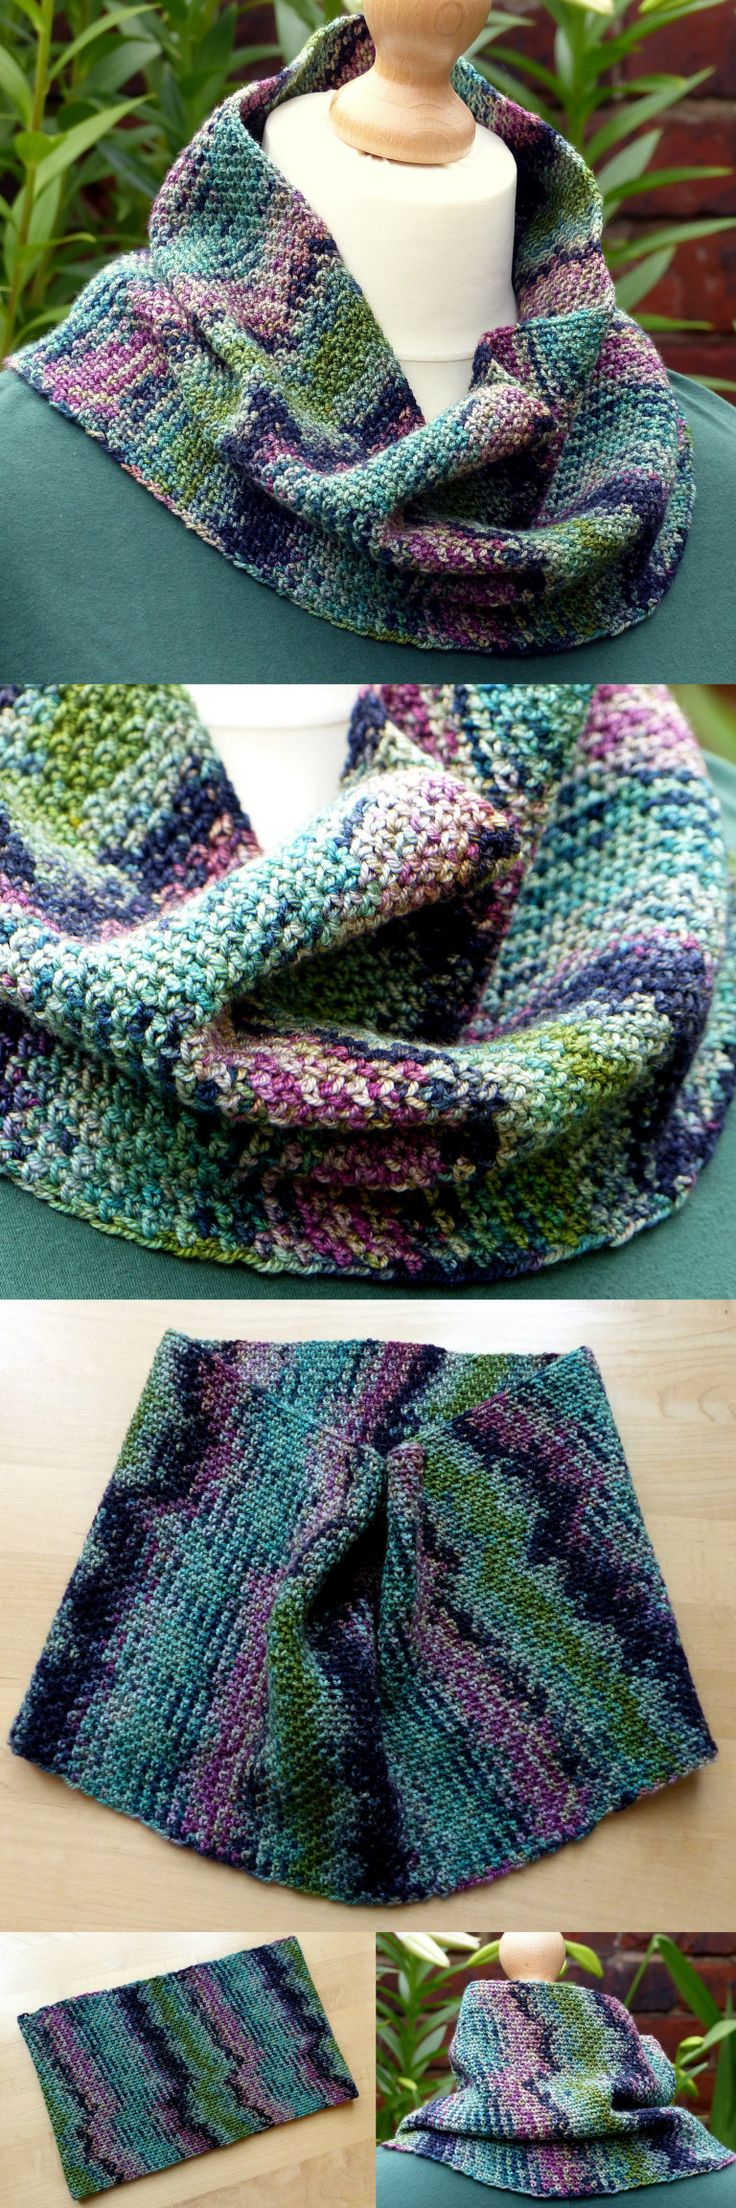 Crochet Yarn Pooling : ... about Yarn pooling on Pinterest Four square, Yarns and Ravelry